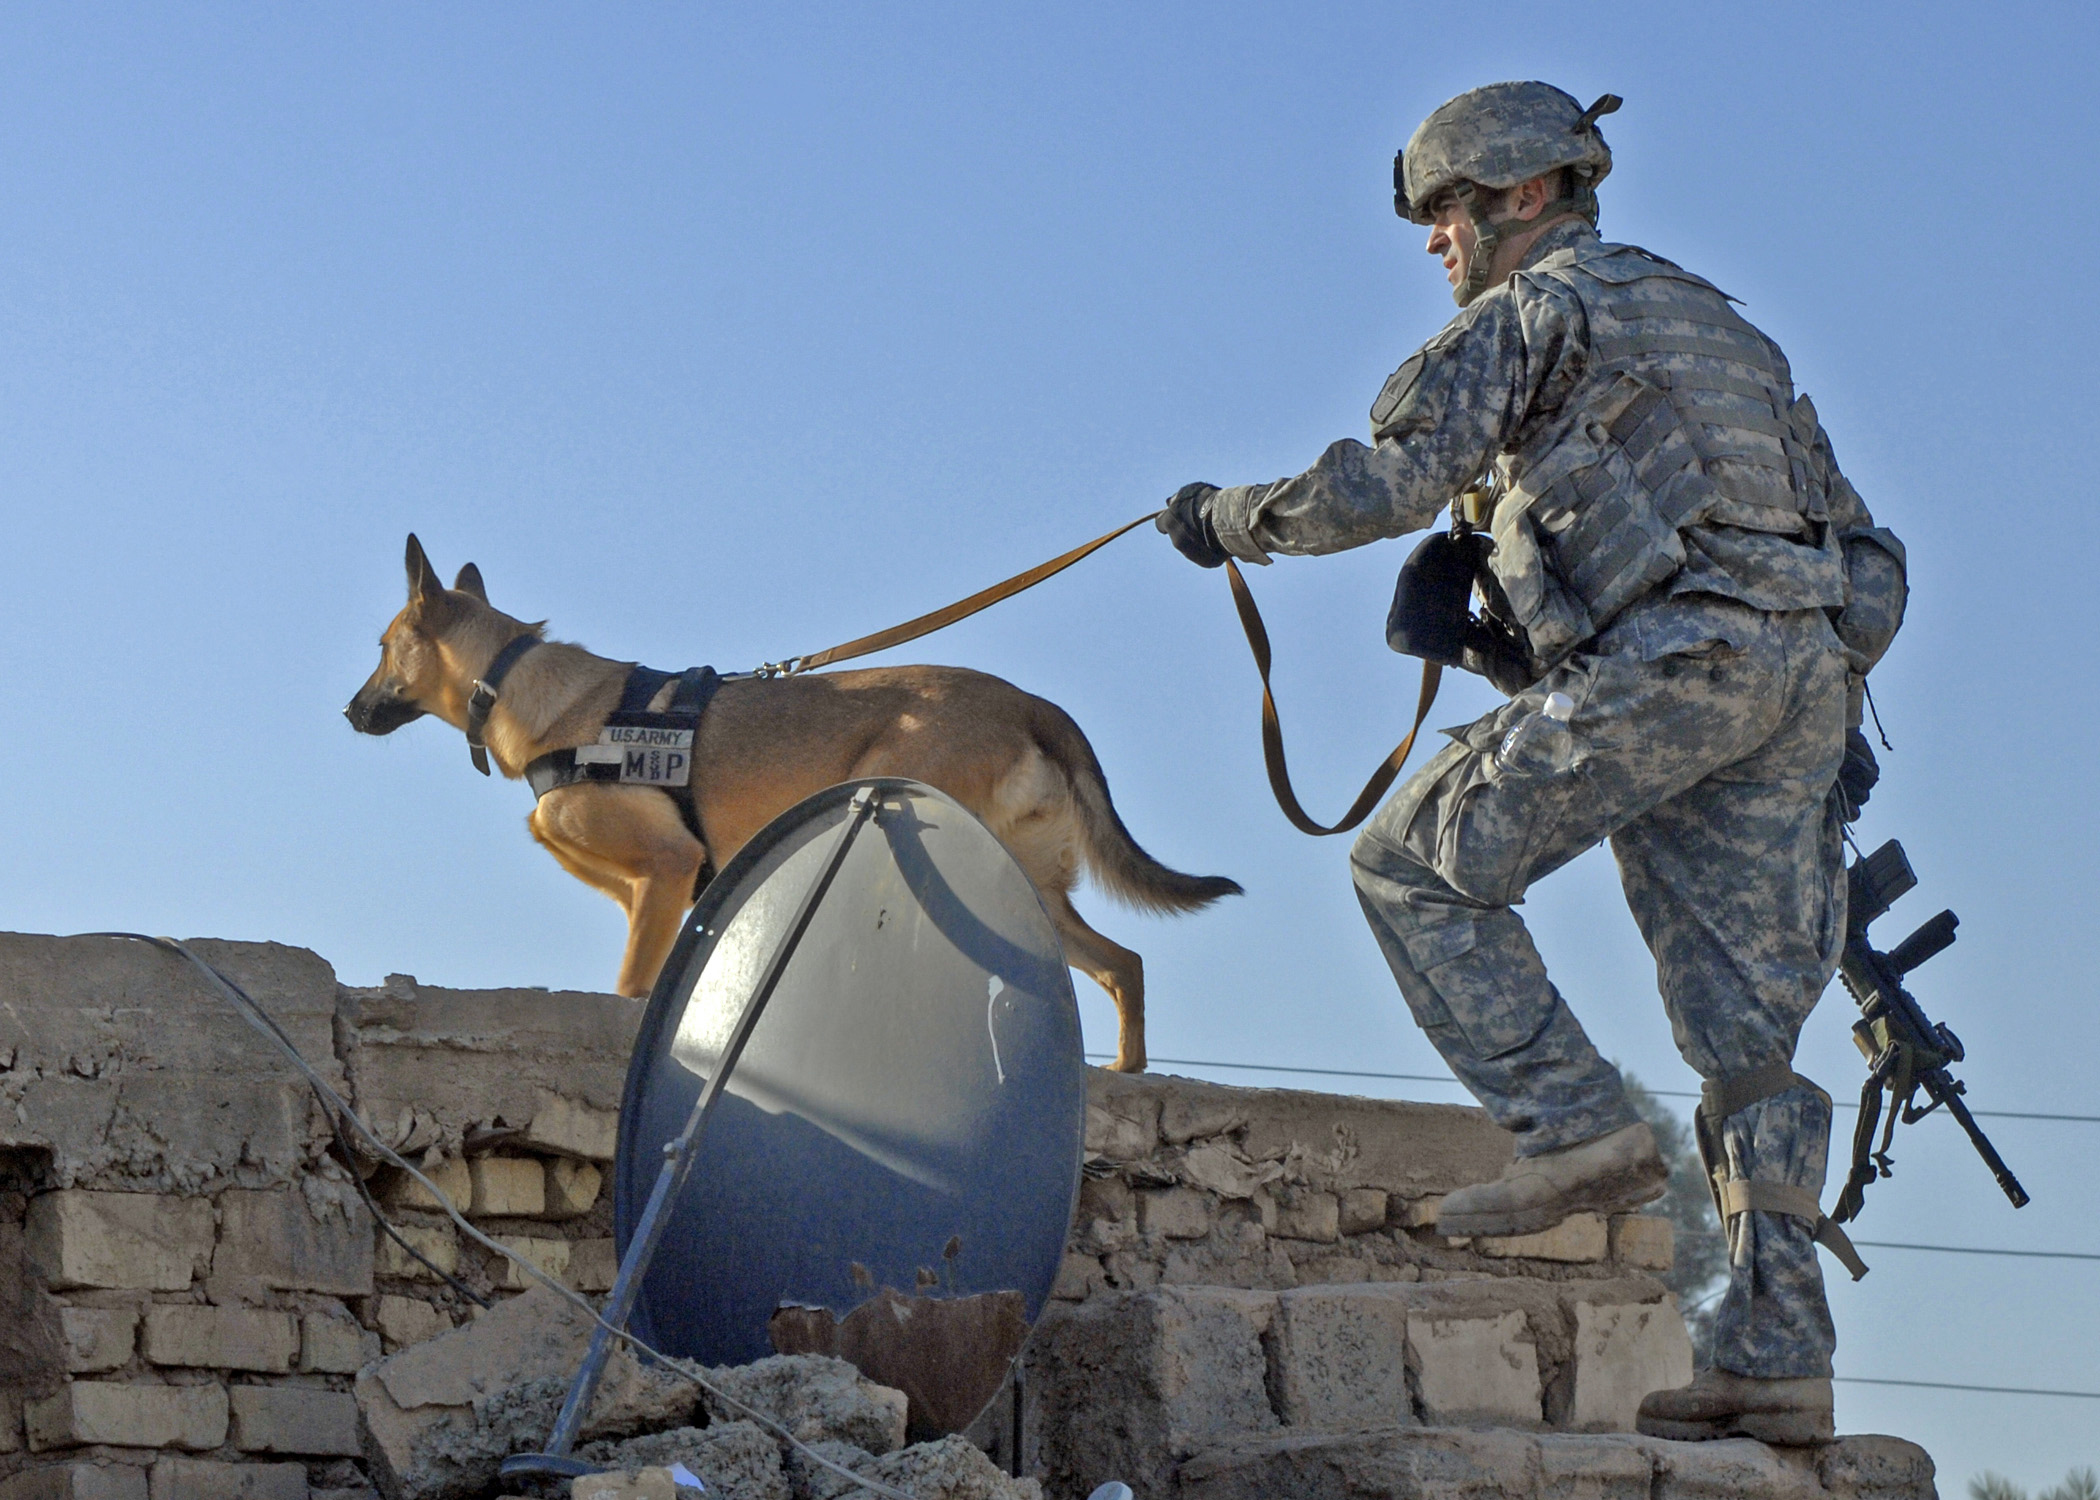 Who decides military dog names? - Four Legged Soldiers